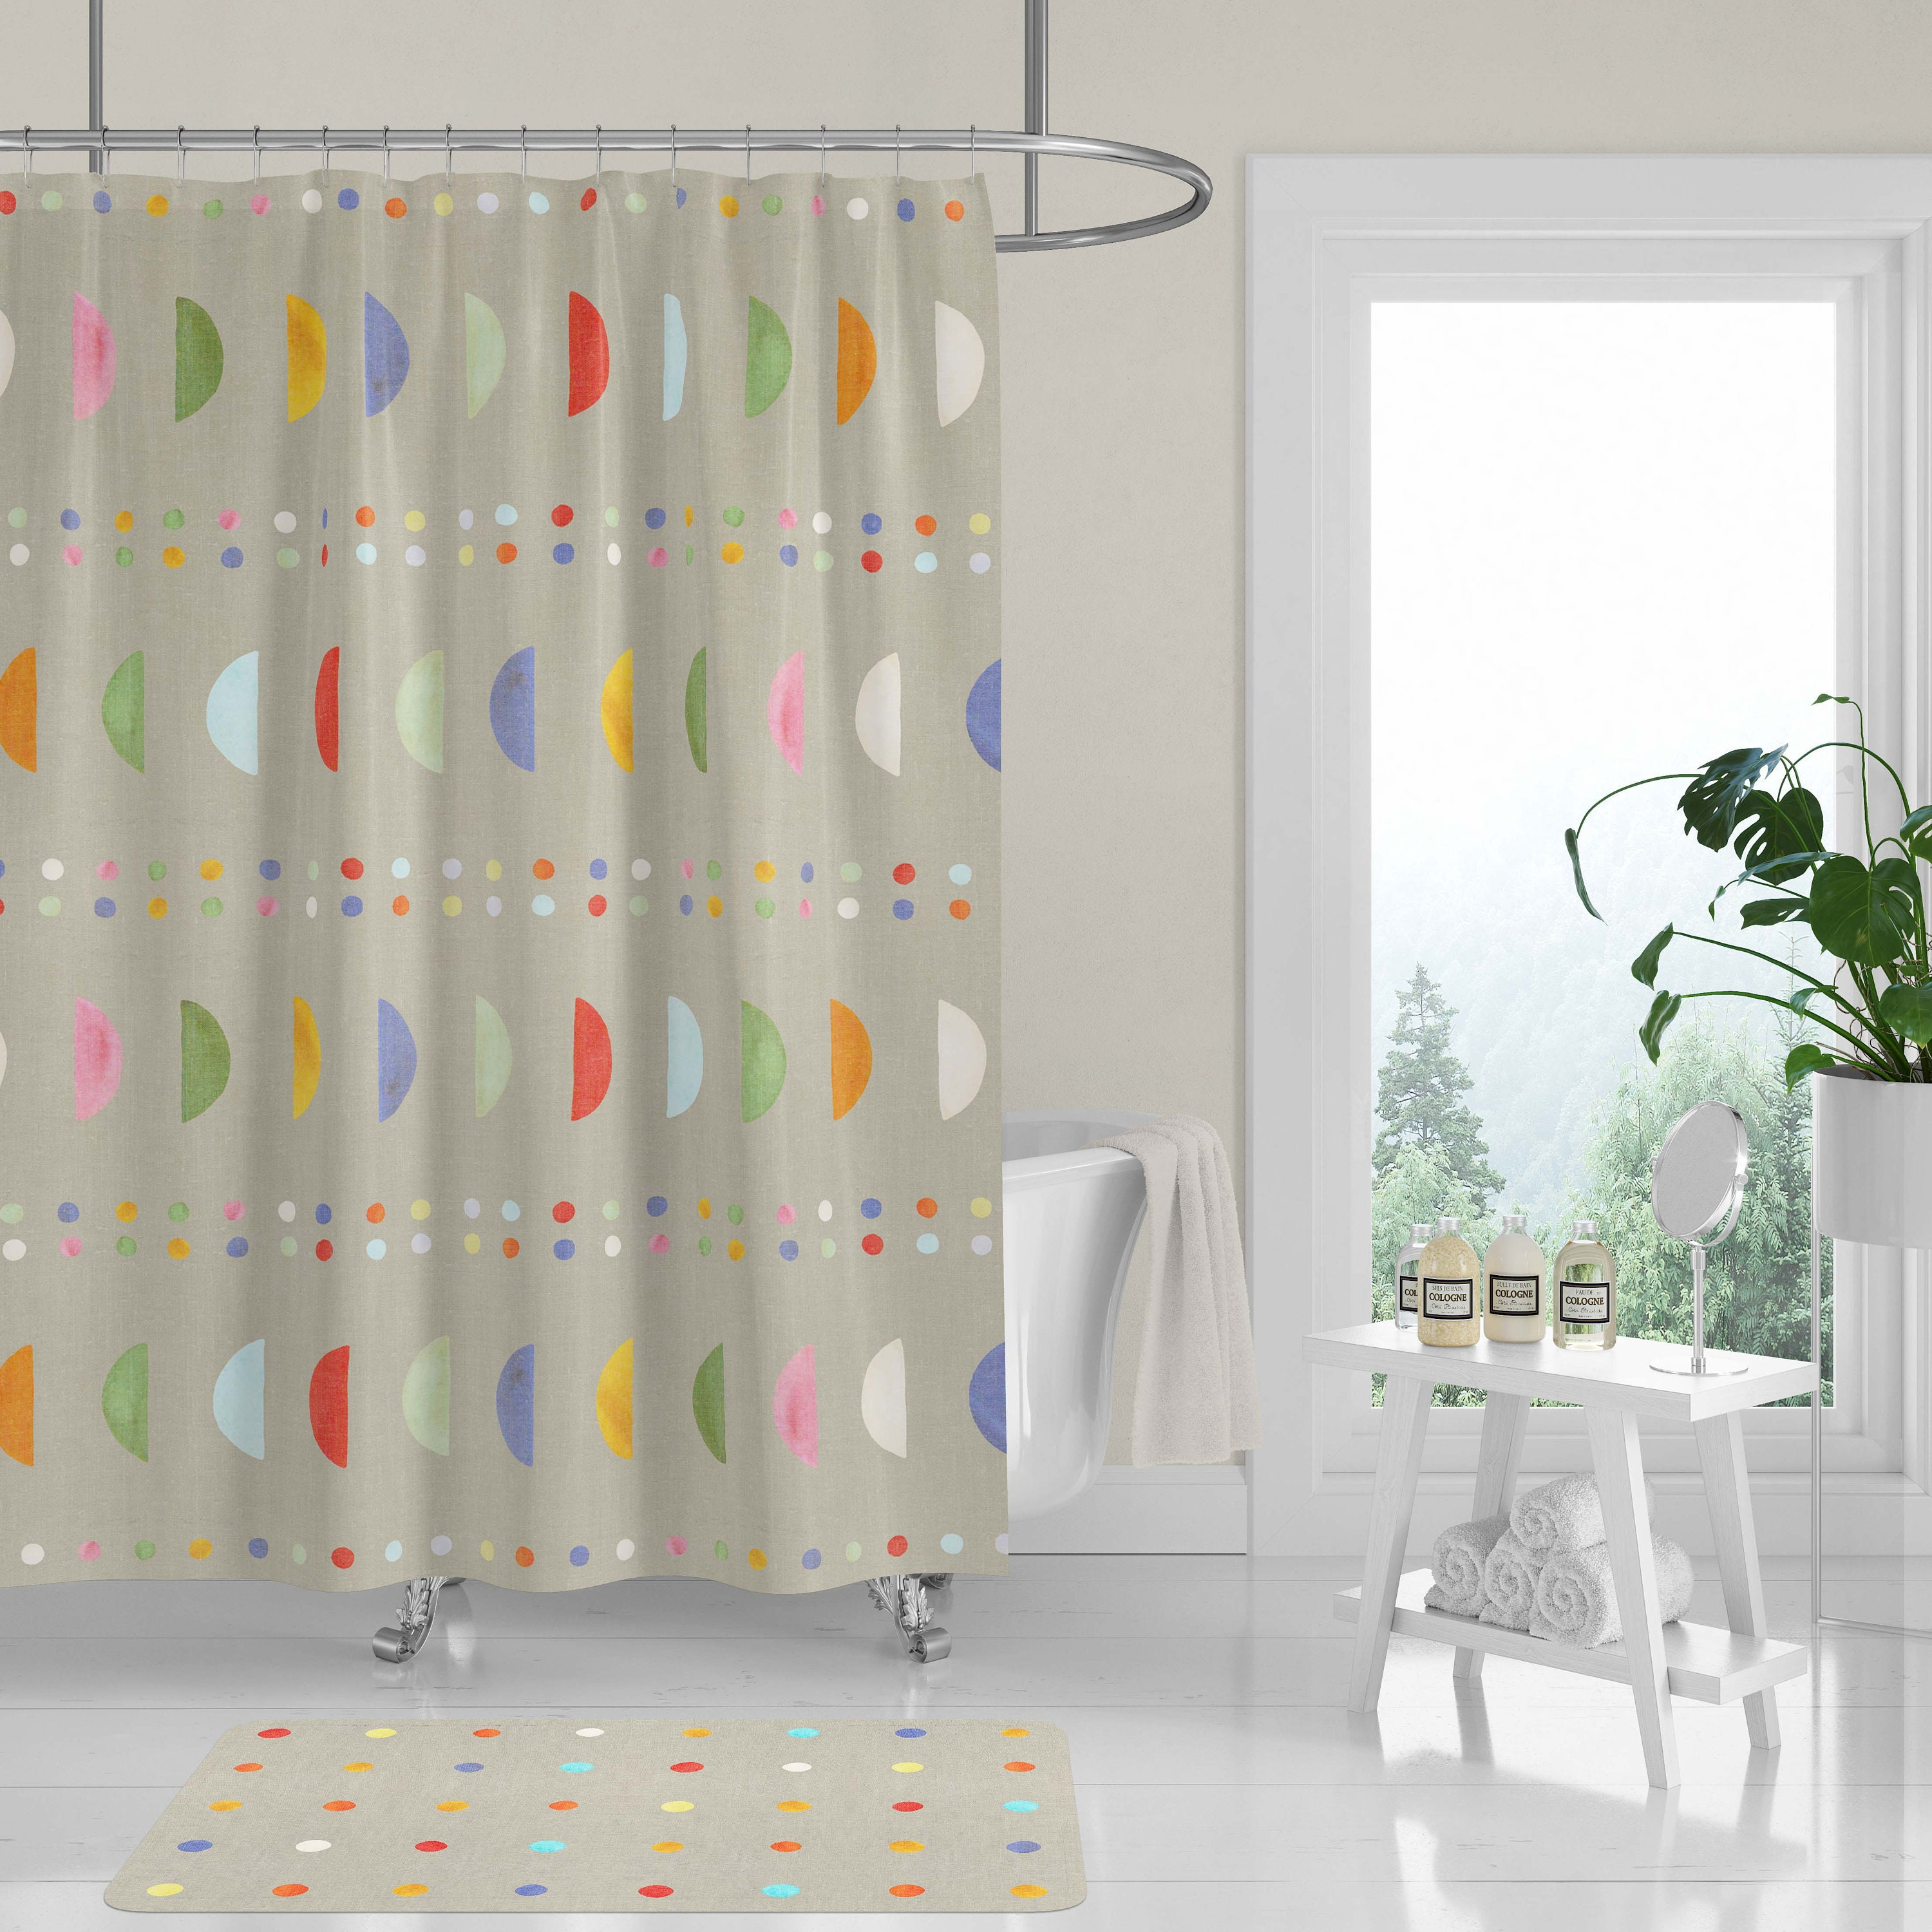 New Premium Fabric Shower Curtain Modern Colorful Crescent Moons Dots Woodblock Cutouts Neutral Tan Beige Linen Look Machine Washable